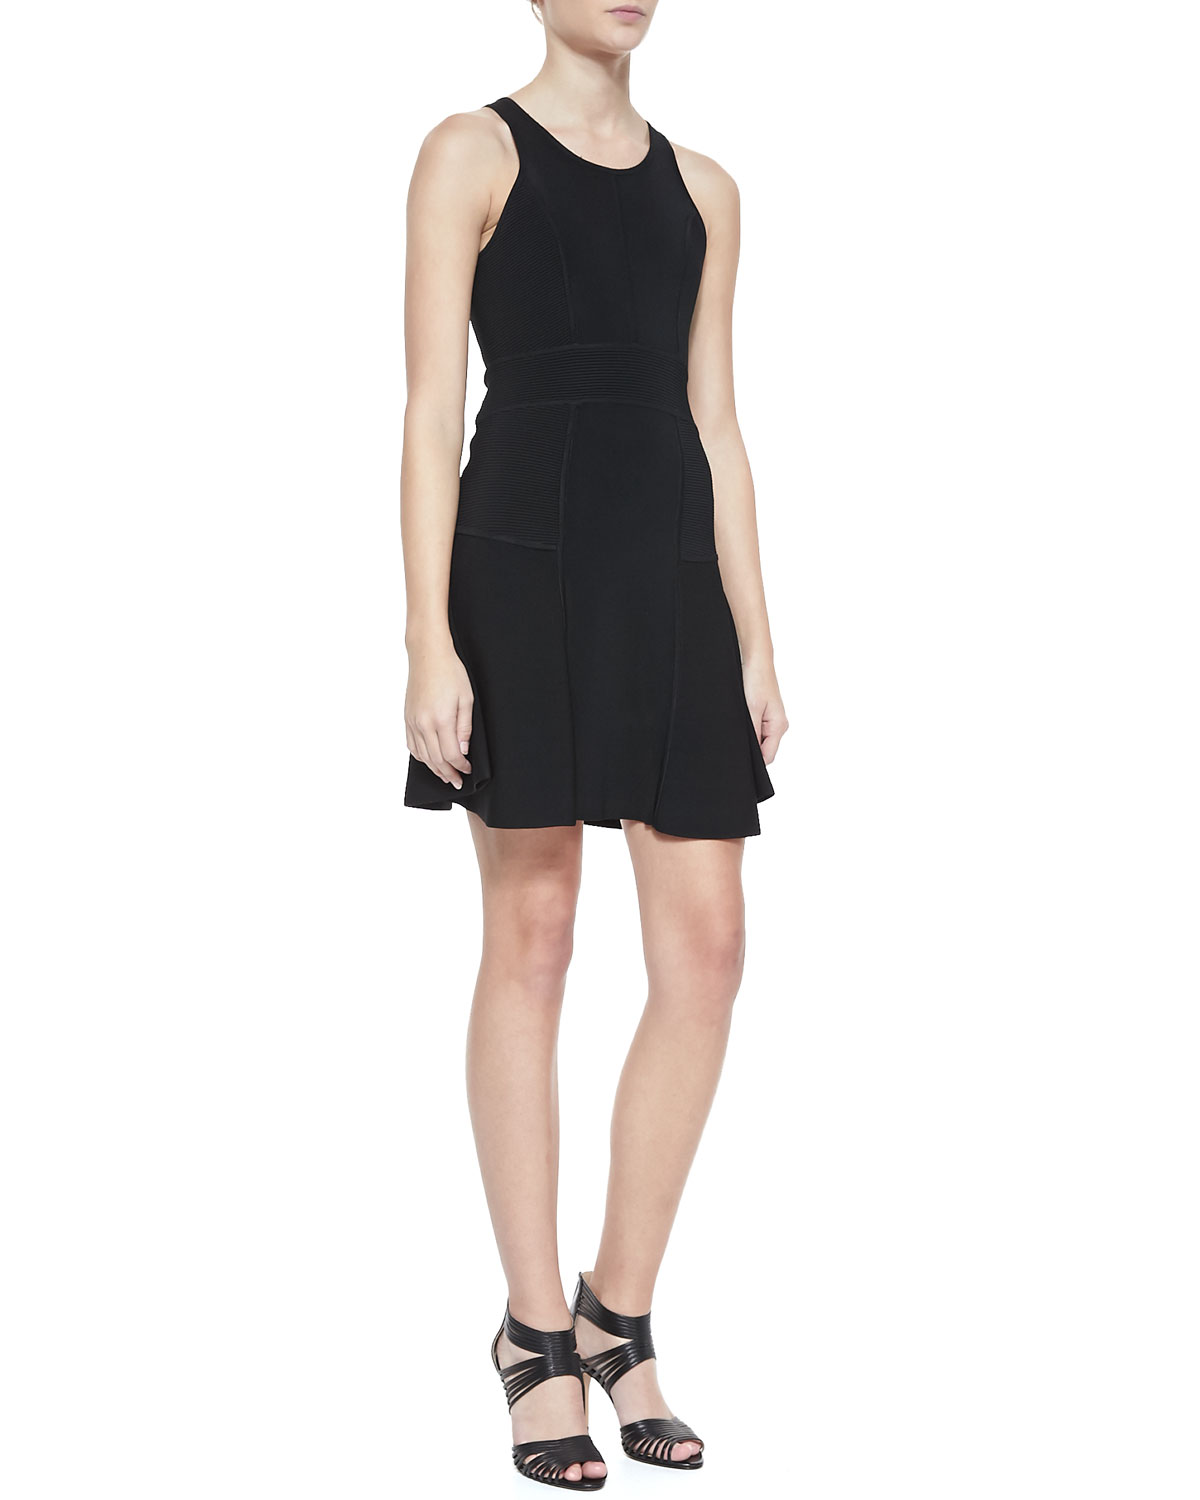 Womens Fit & Flare Sleeveless Ponte Dress   Milly   Black (MEDIUM)